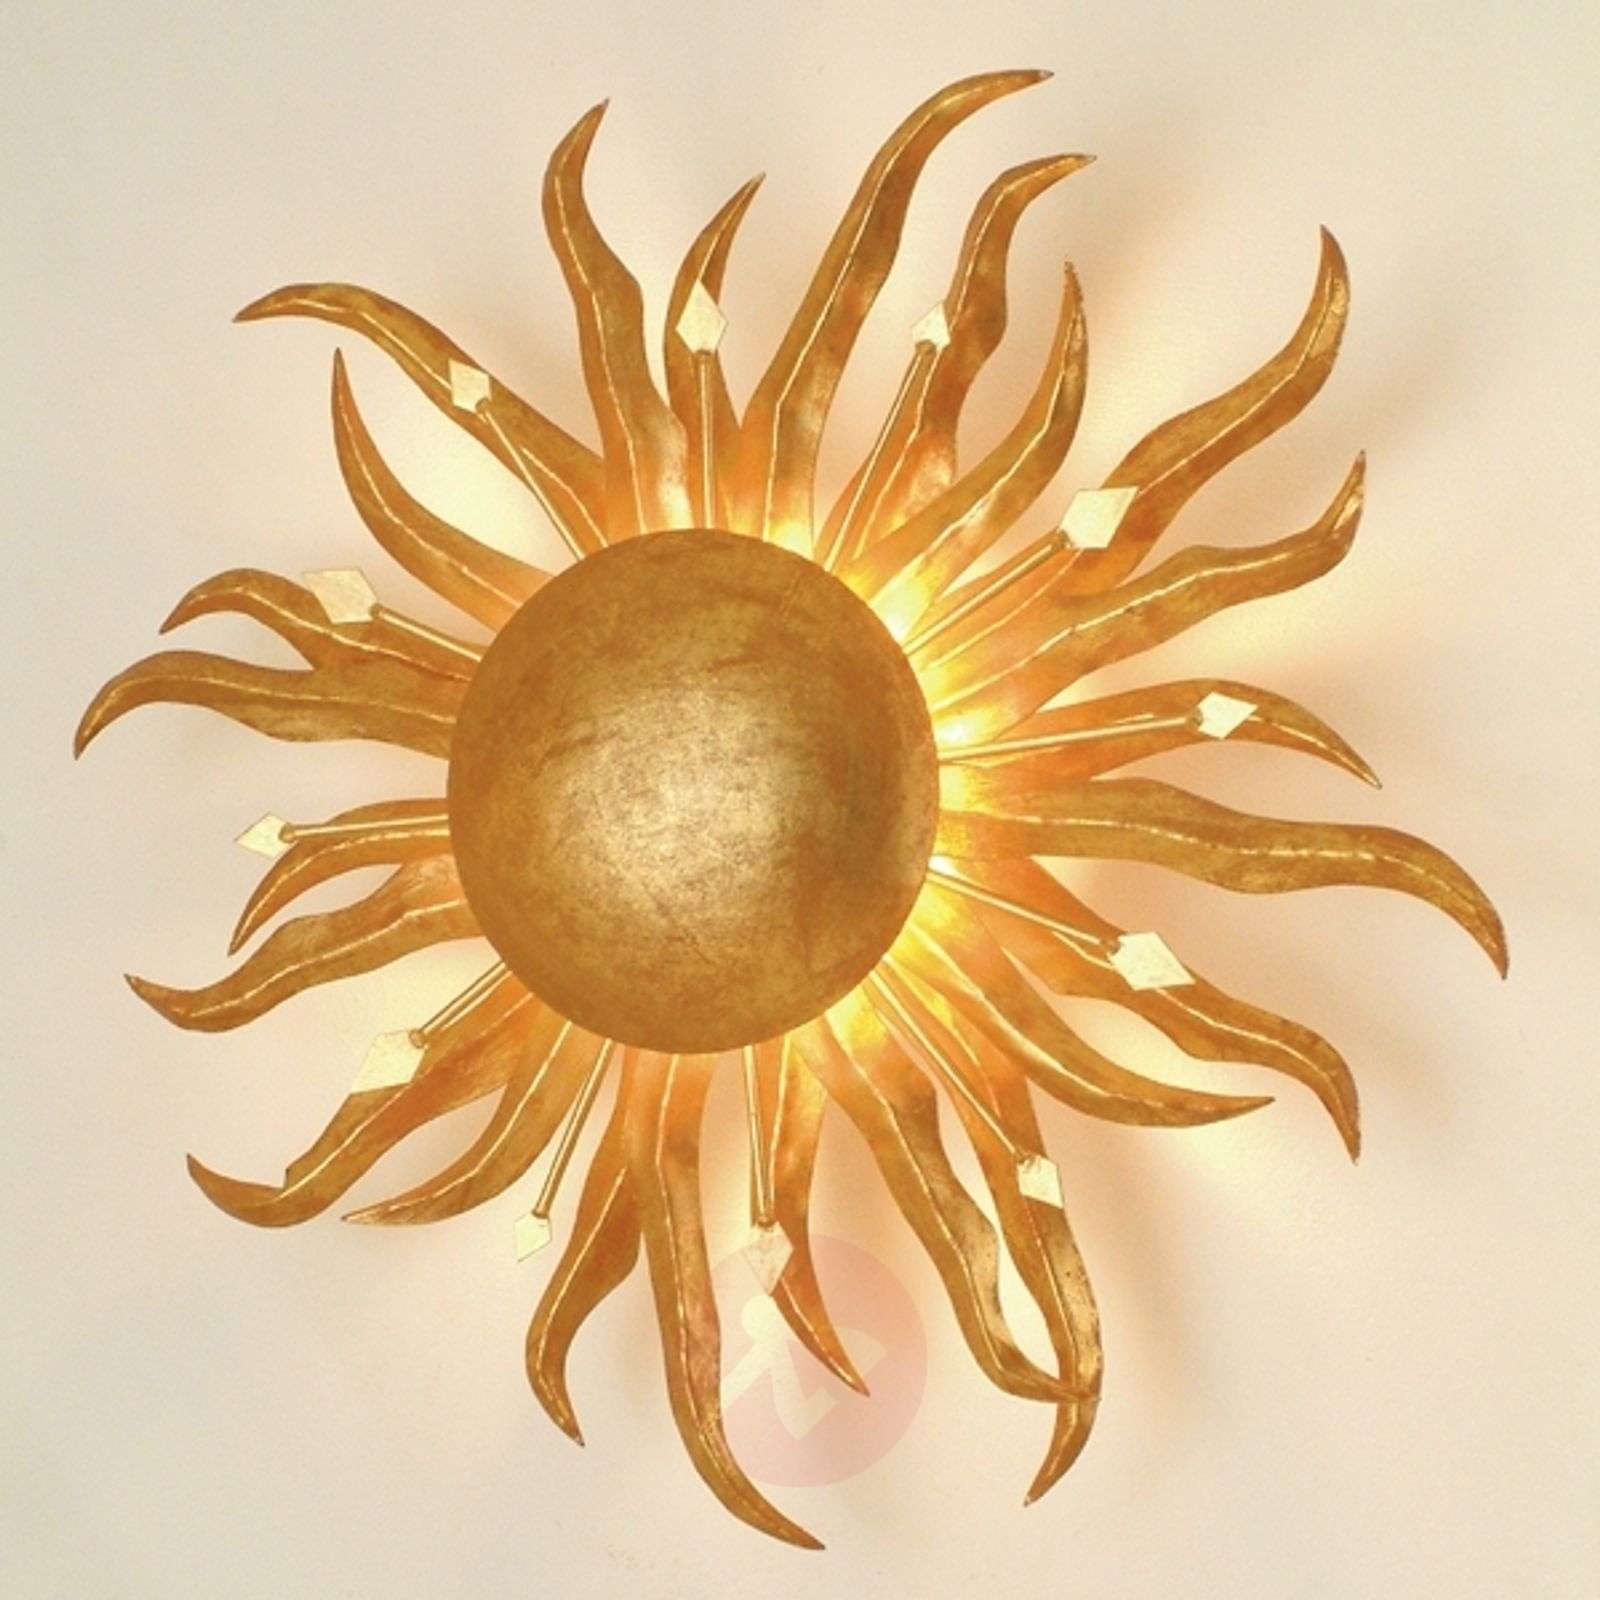 Fascinating wall lamp SONNE GOLD 45 cm-4512059-01